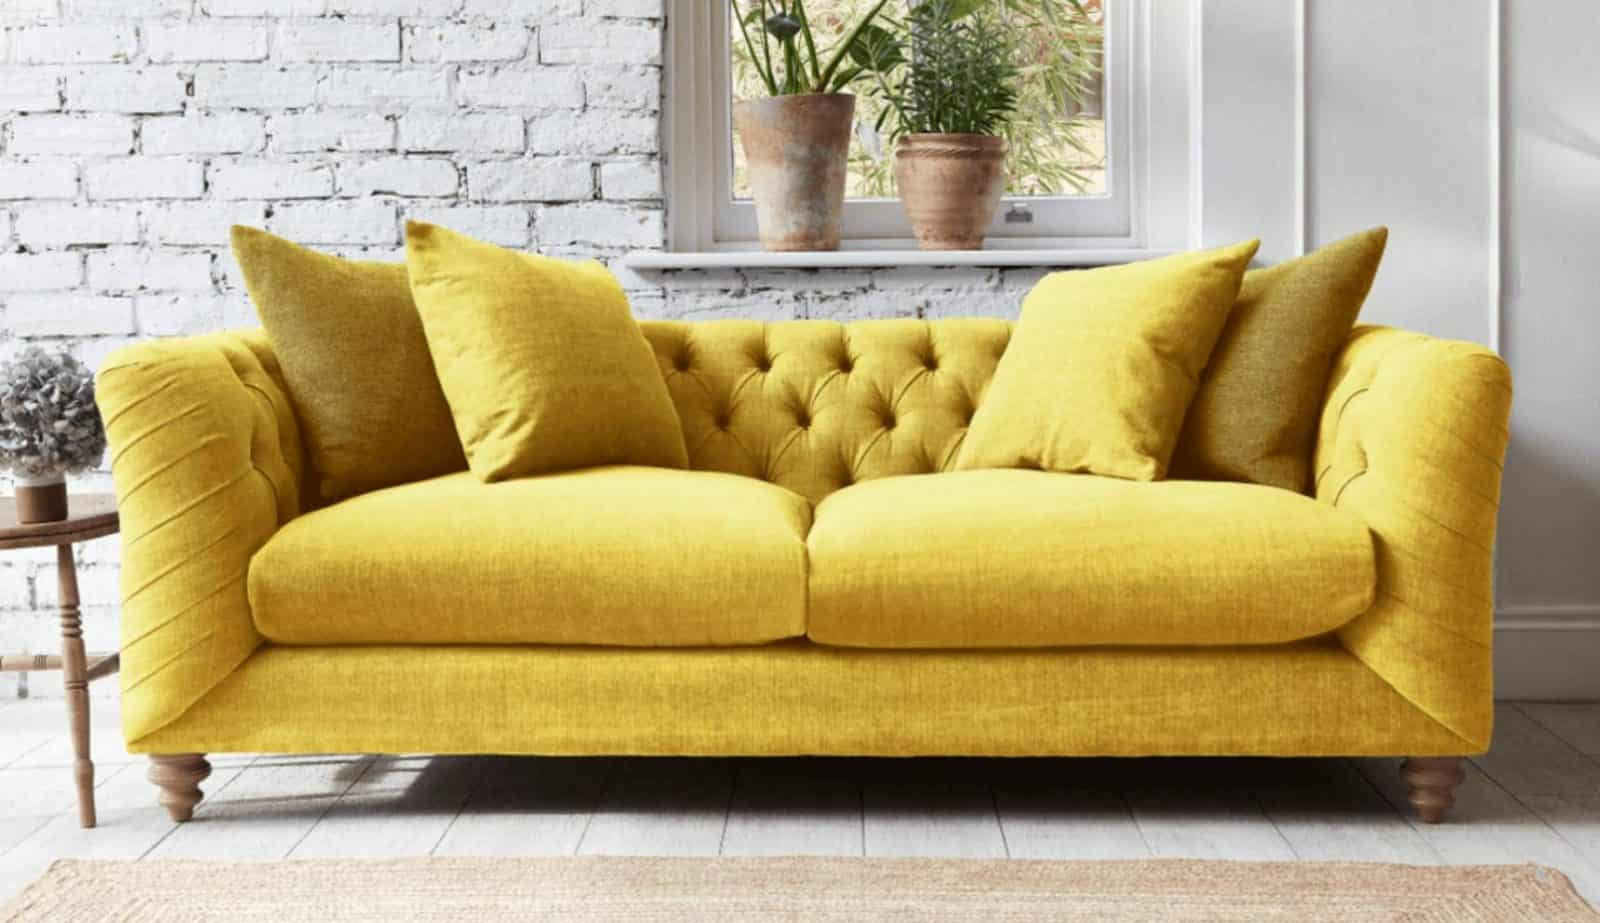 Tips for getting your sofa into your new home